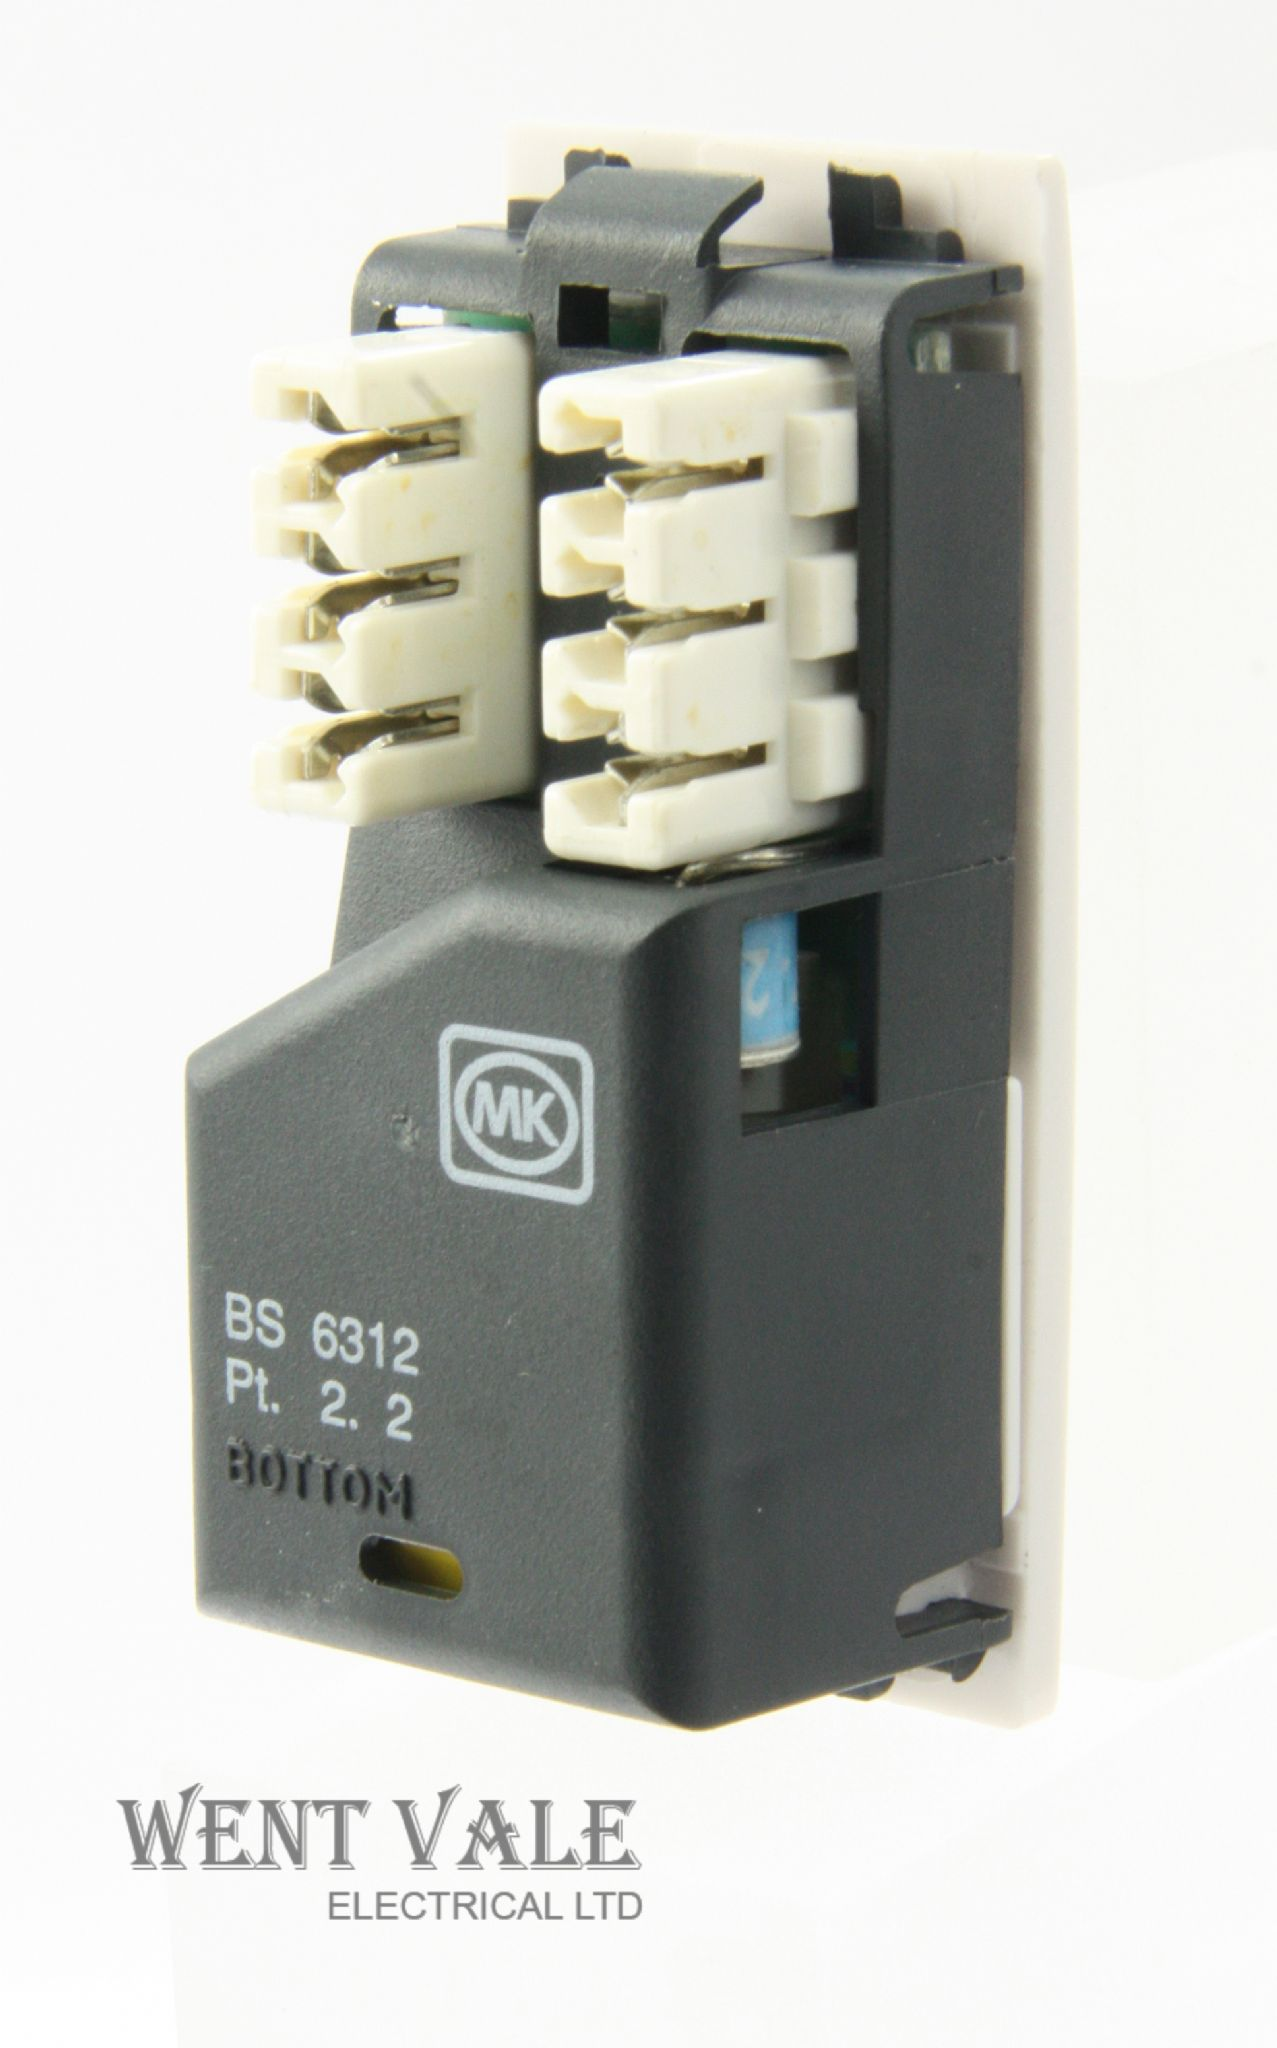 mk logic plus k420 whi master telephone socket module new rh wentvaleelectricalltd co uk MK Cable Management MK Cable Management